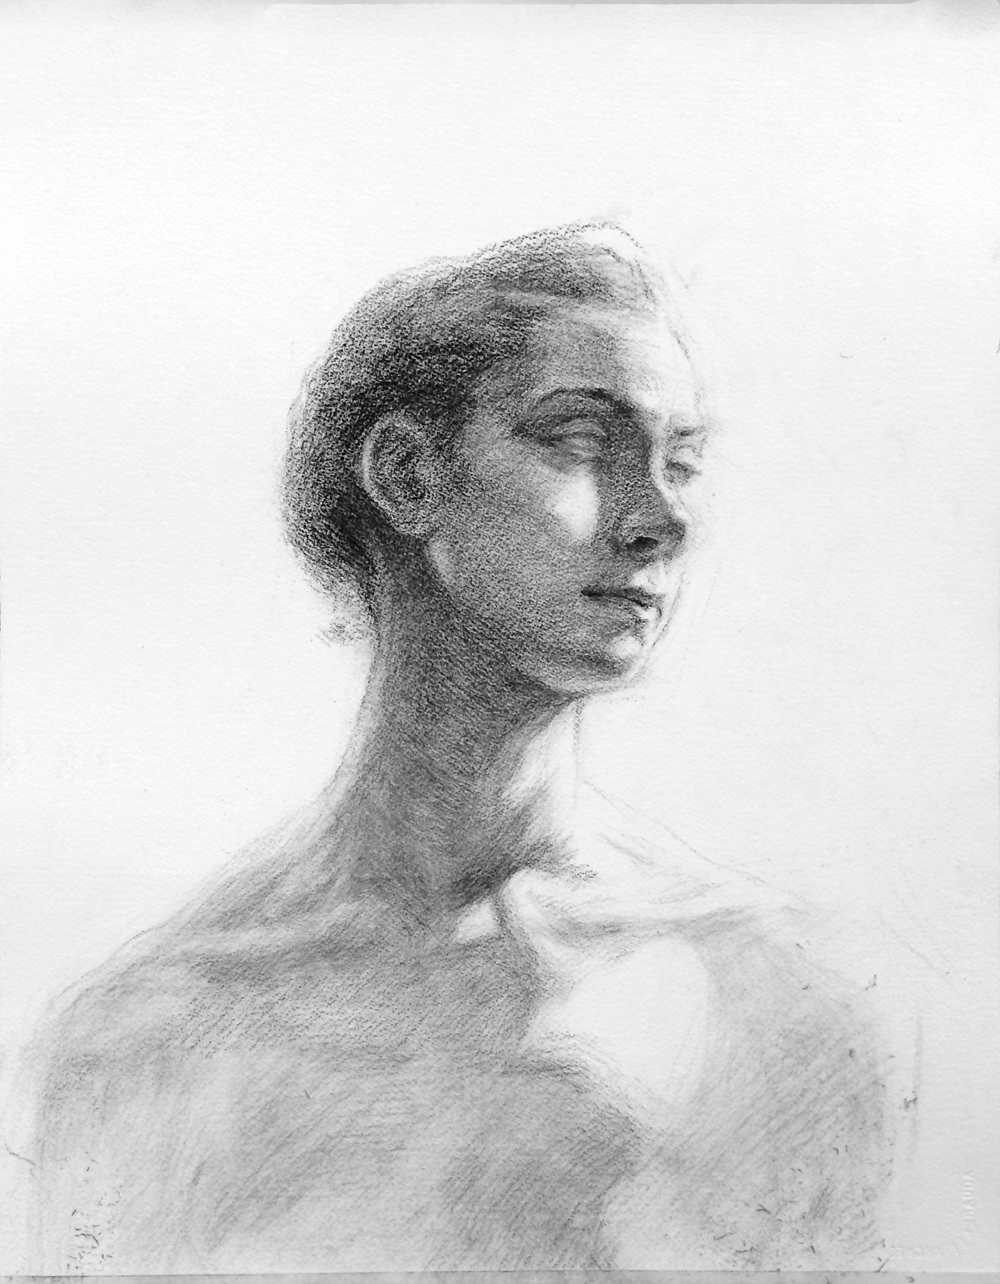 Portrait / 16x20 / Charcoal on Paper / 2015